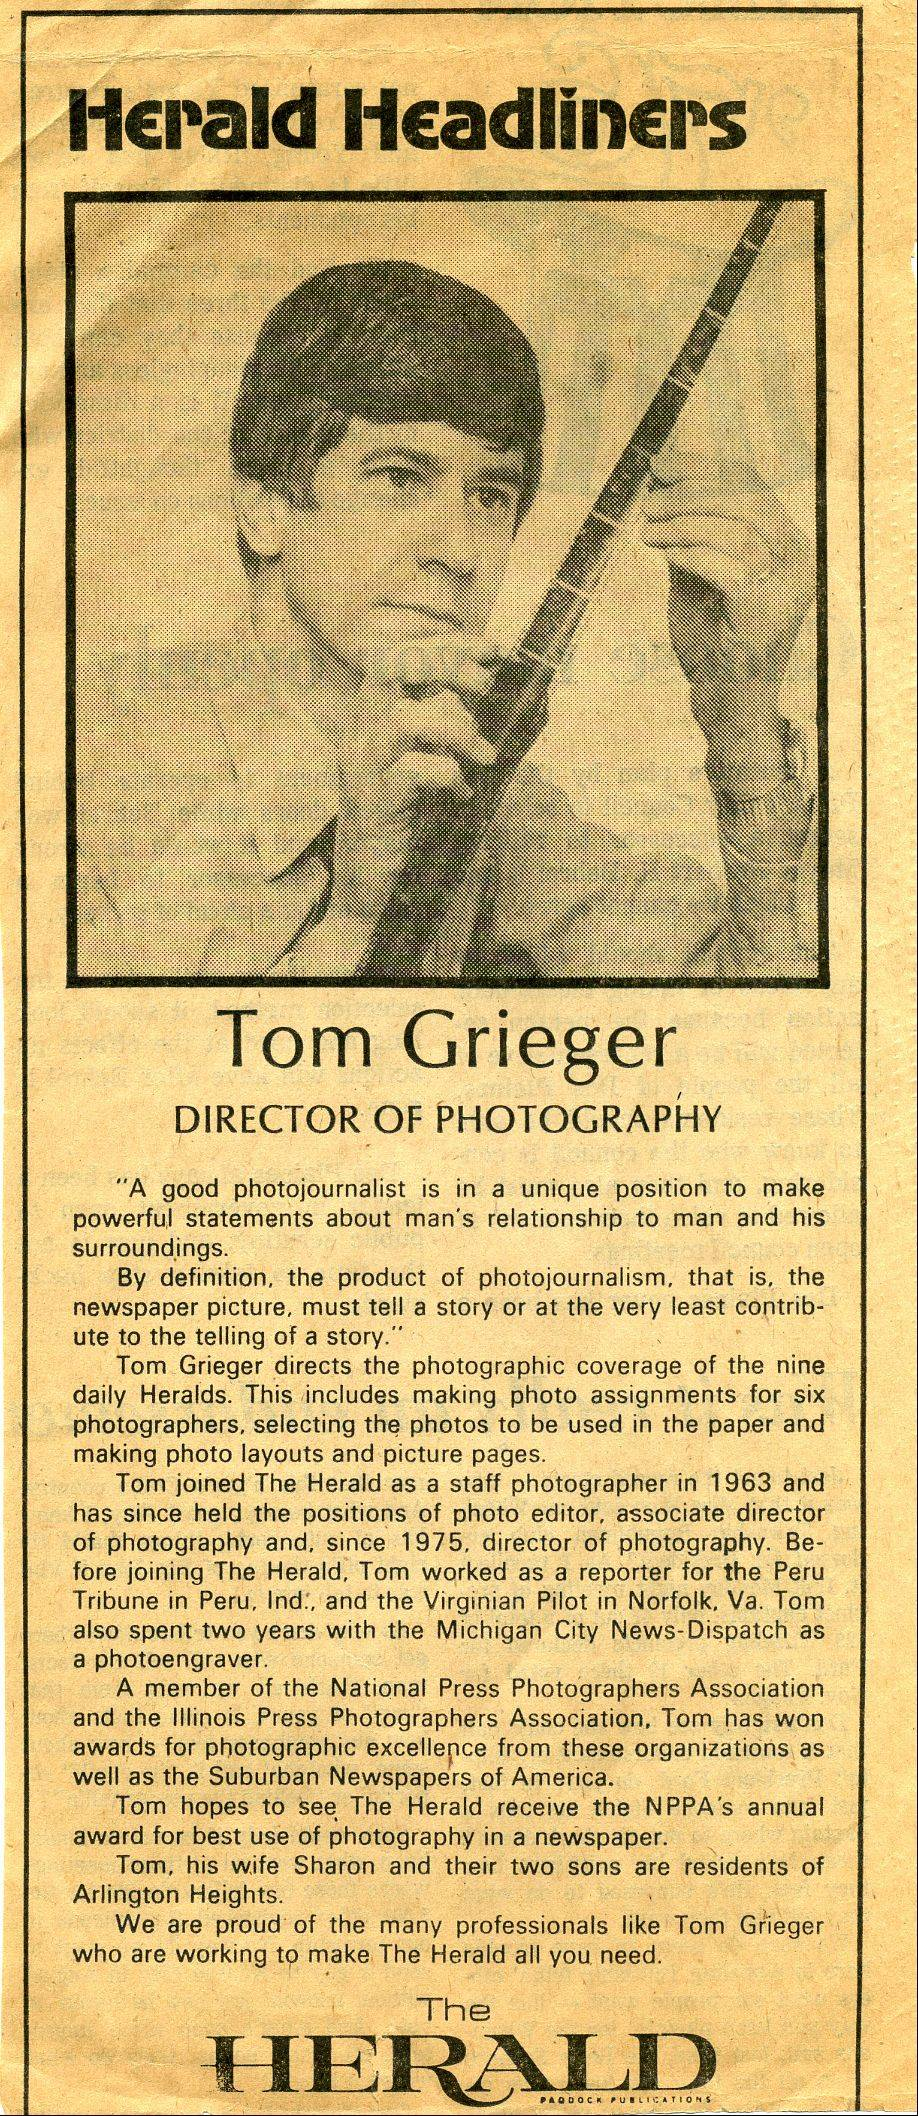 A clipping from the Daily Herald in 1976 profiling Director of Photography Tom Grieger.